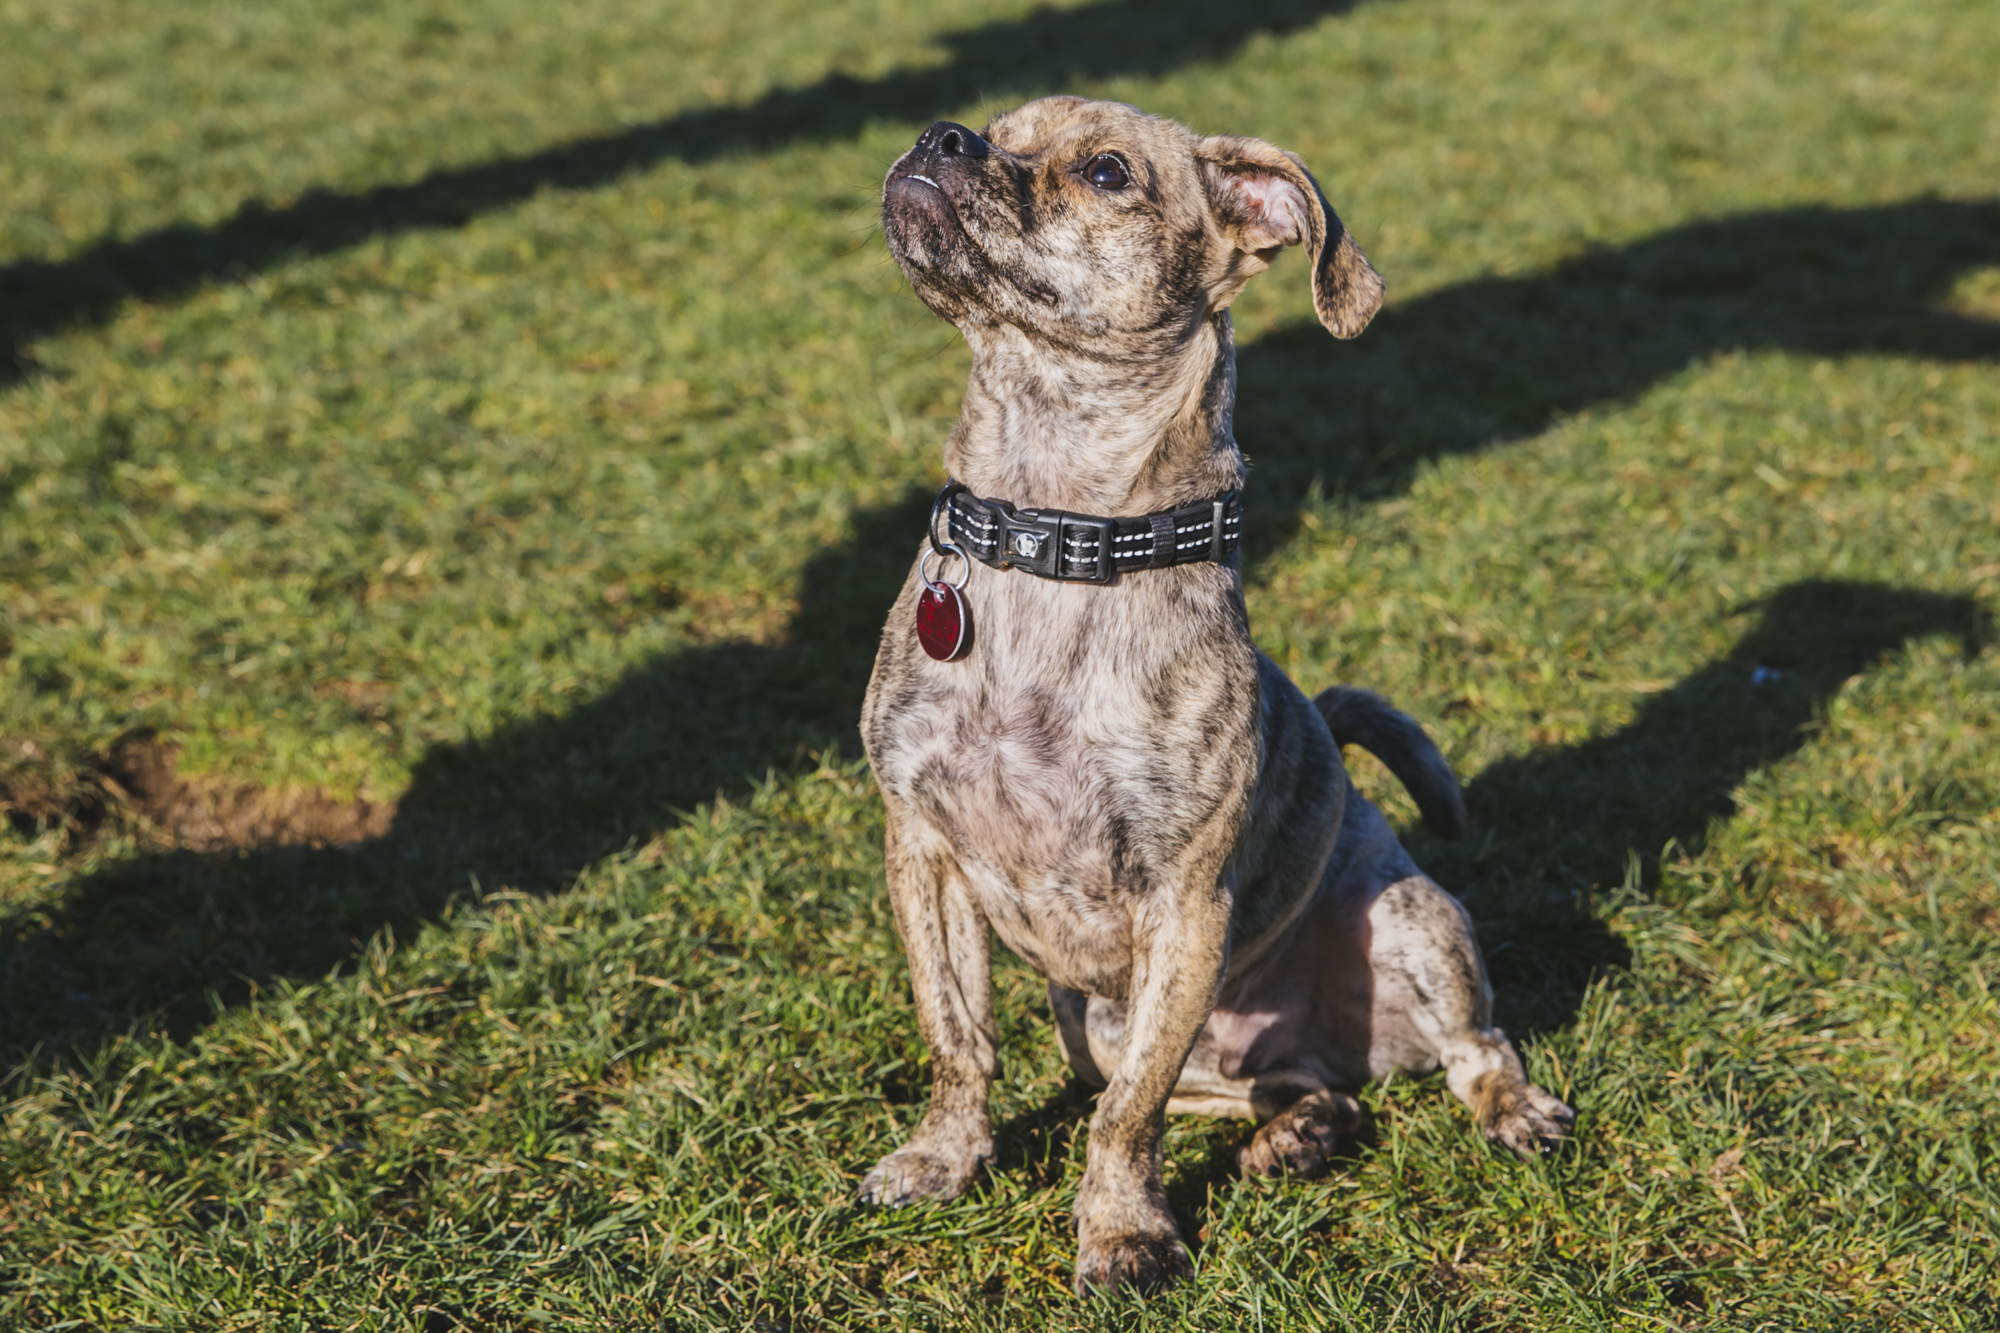 This is a very special RUFFined spotlight this week! Brisket is our first Pet of the Week for 2019, and what an honor that is. Meet Brisket, a one year old Pug/Dachshund Mix. Brisket is a southern-born rescue who is living it up in the PNW. He's a fast moving, energetic little pup with a big personality and an even bigger underbite! Brisket likes food, treats, his fur-sister Harper, running, hiking and riding the bus. He dislike being cold, rainy weather, watching people eat, wearing sweaters and car rides. You can follow Brisket's journey through life on his instagram @catdaug.{ }The Seattle RUFFined Spotlight is a weekly profile of local pets living and loving life in the PNW. If you or someone you know has a pet you'd like featured, email us at hello@seattlerefined.com or tag #SeattleRUFFined and your furbaby could be the next spotlighted! (Image: Sunita Martini / Seattle Refined).